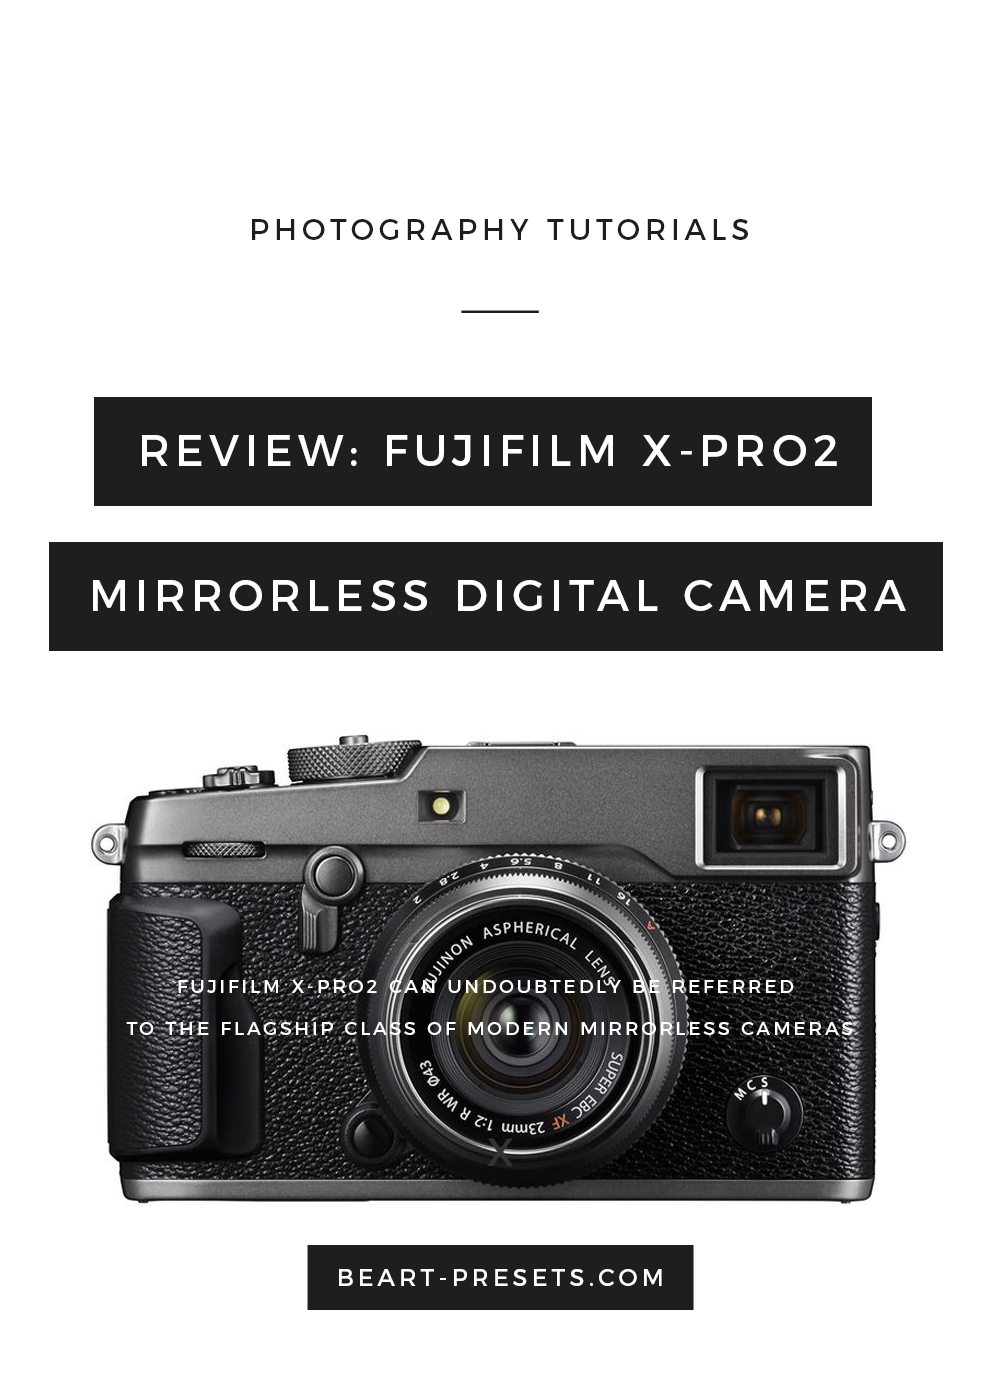 review for fujifilm xpro2 camera by beart-presets